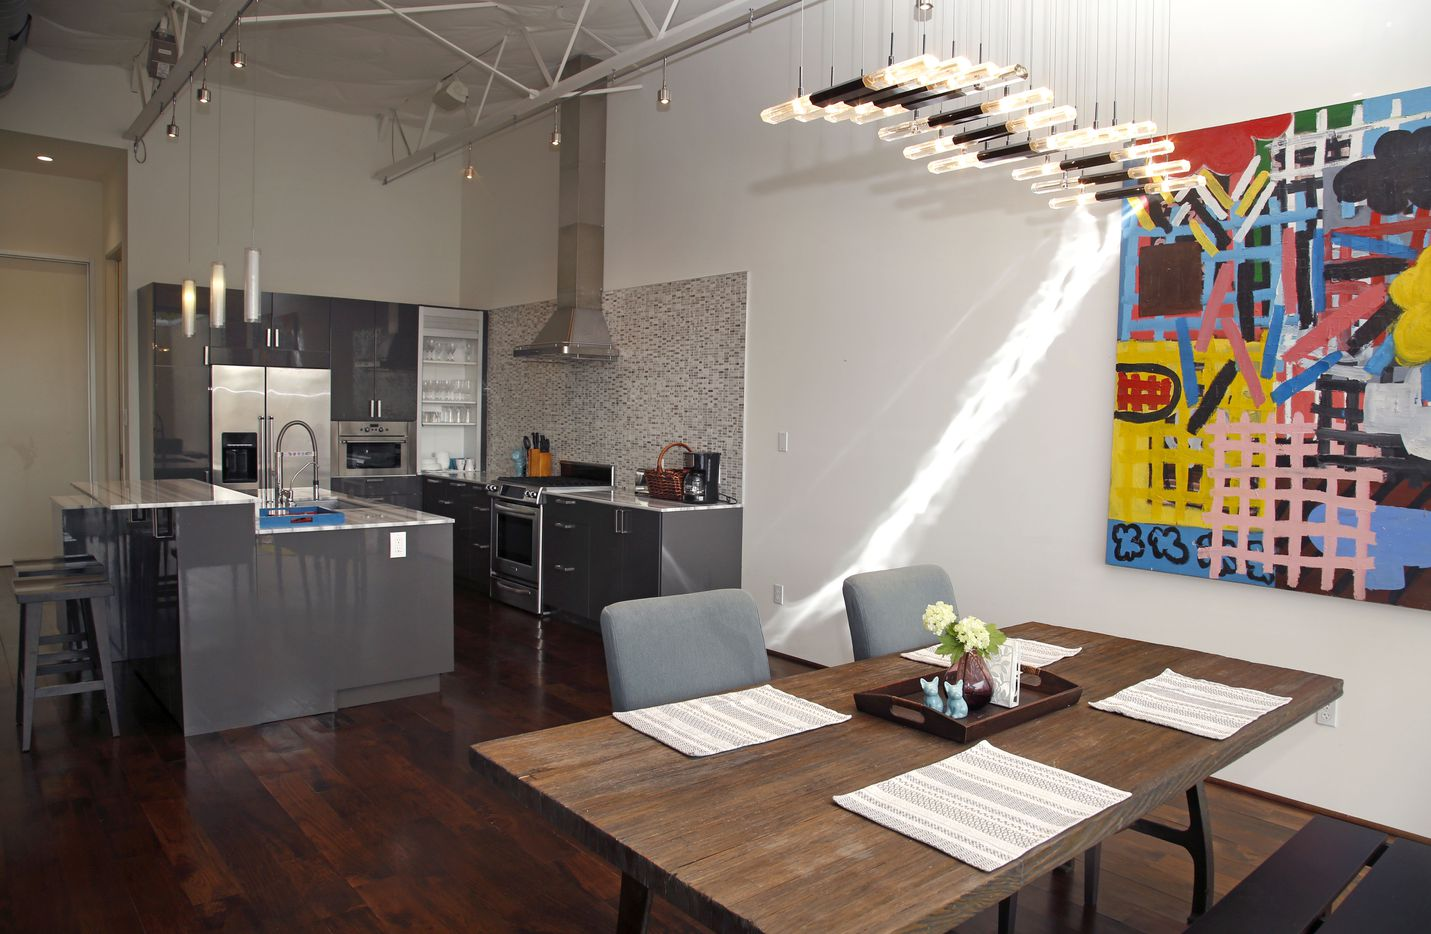 The kitchen and dining area in one of the Vantage Street loft homes in Dallas' Design District.